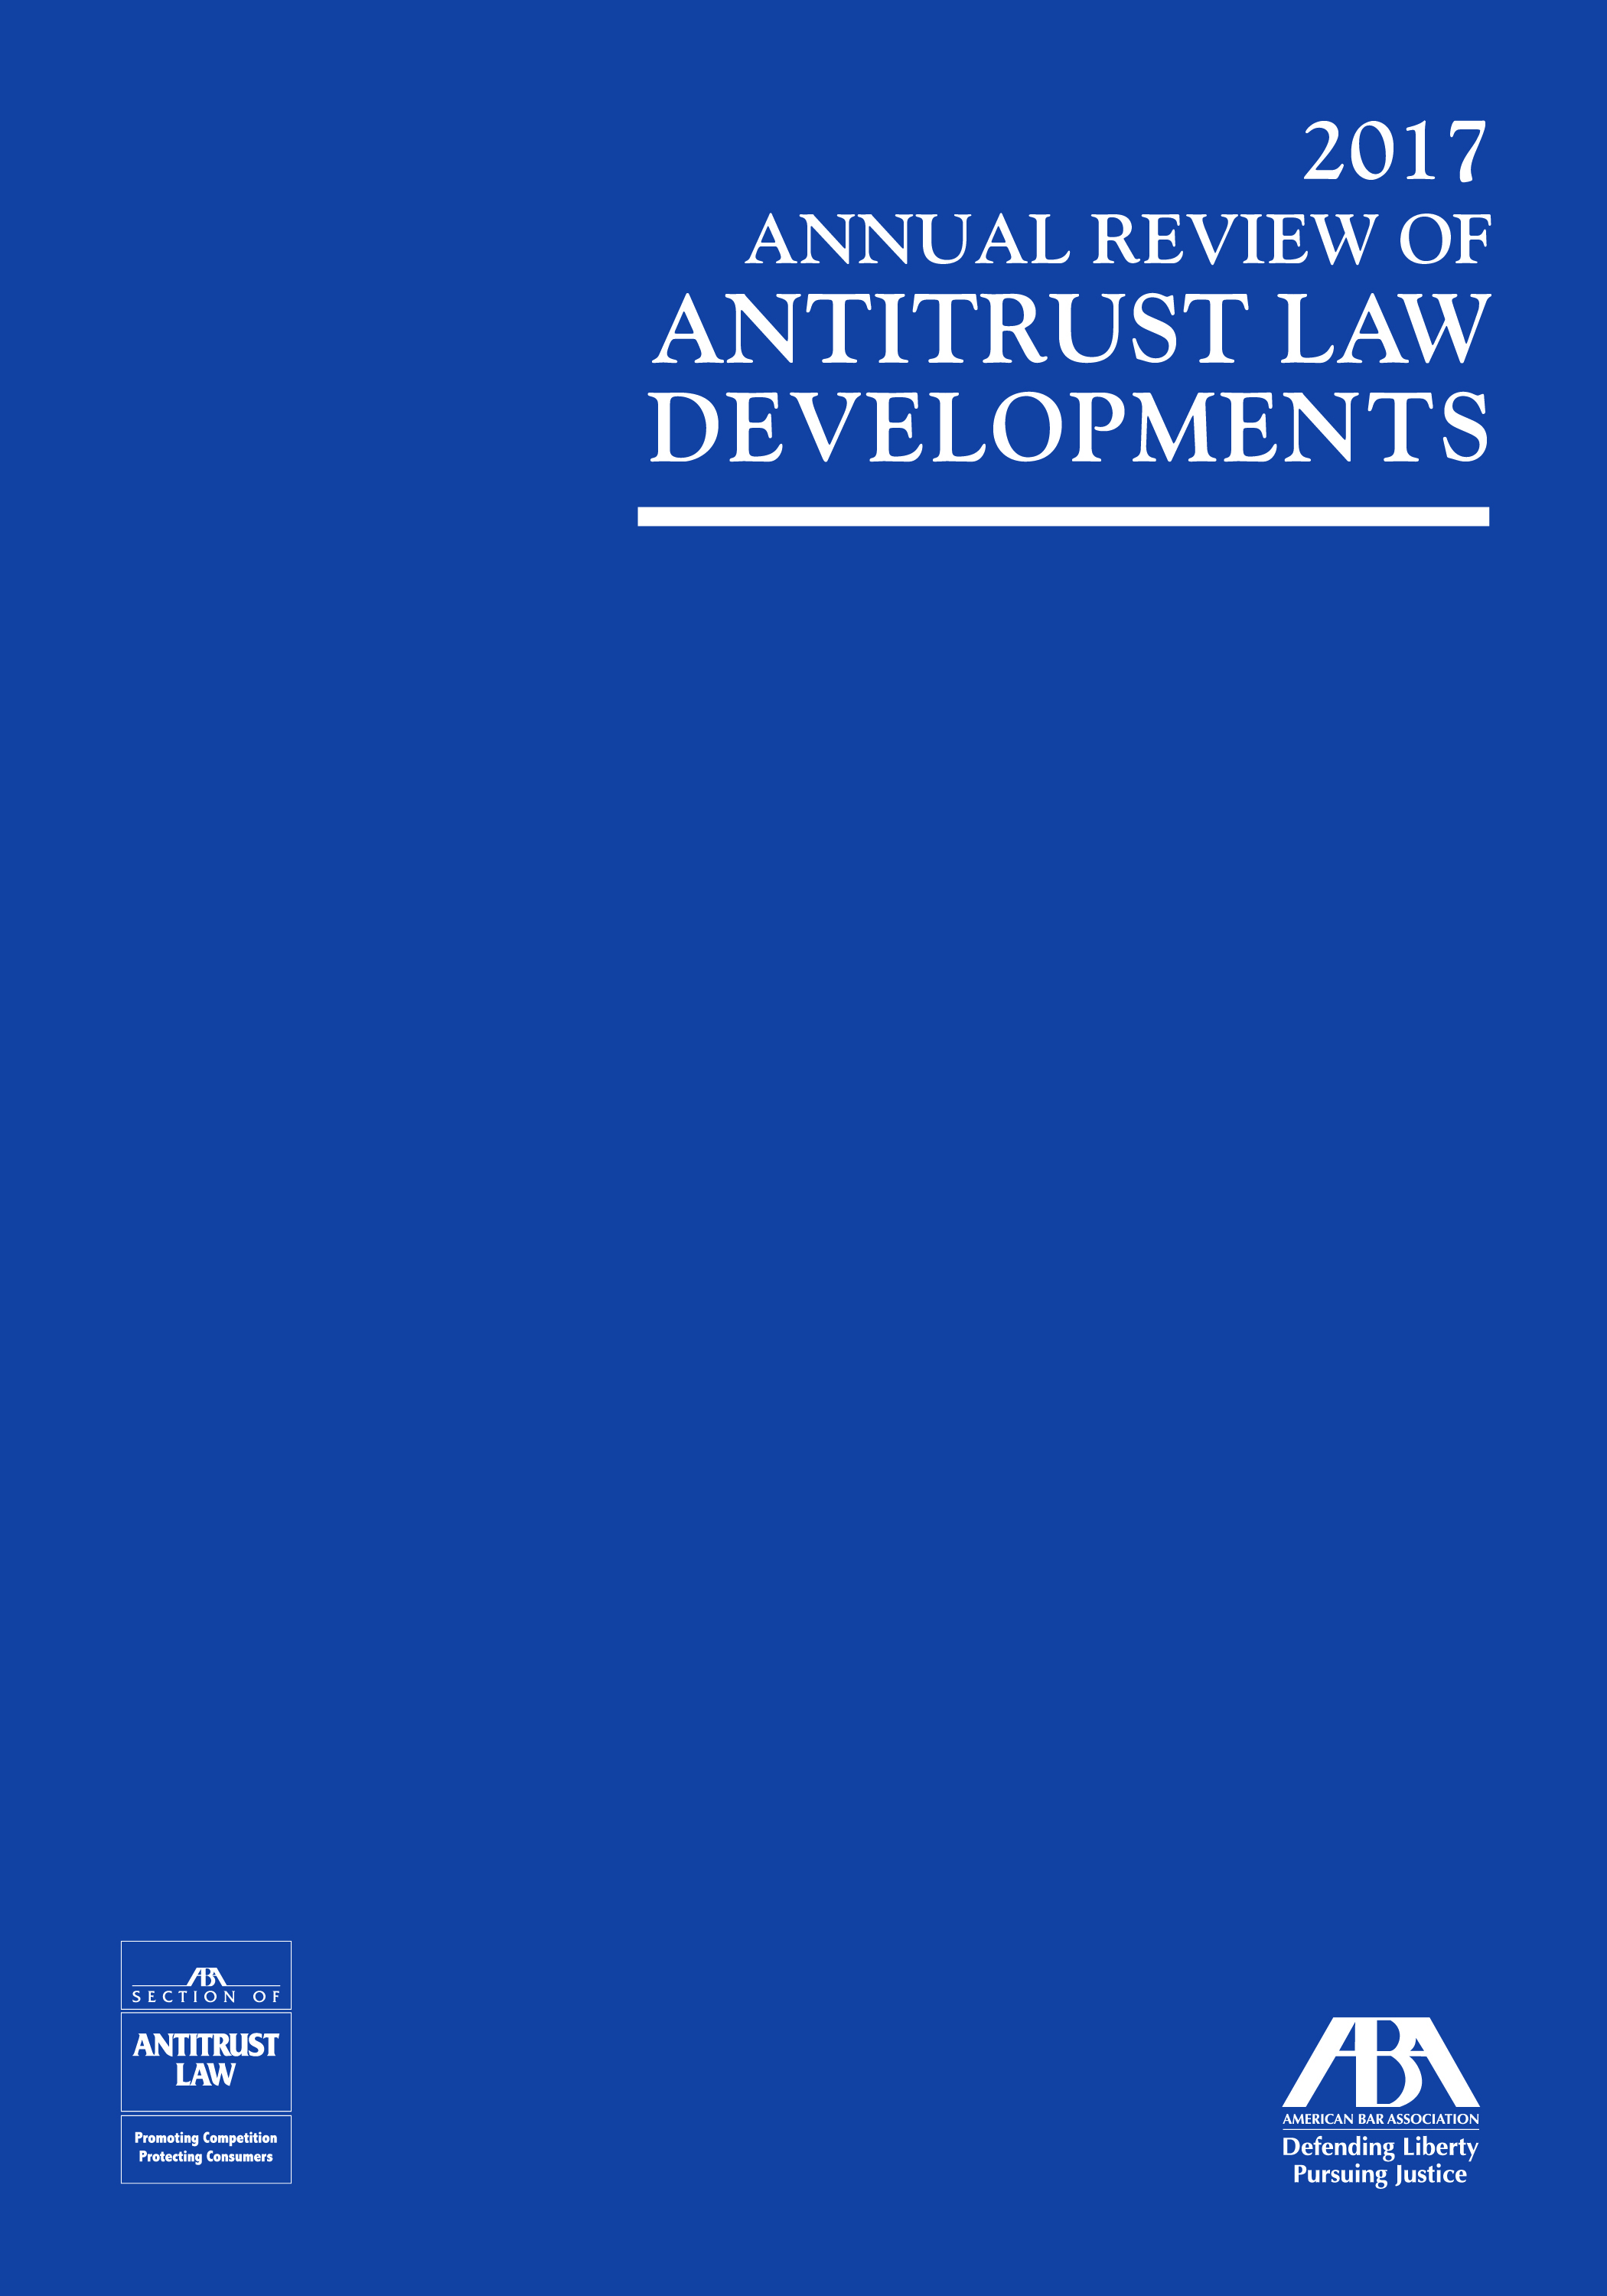 2017 Annual Review of Antitrust Law and Development